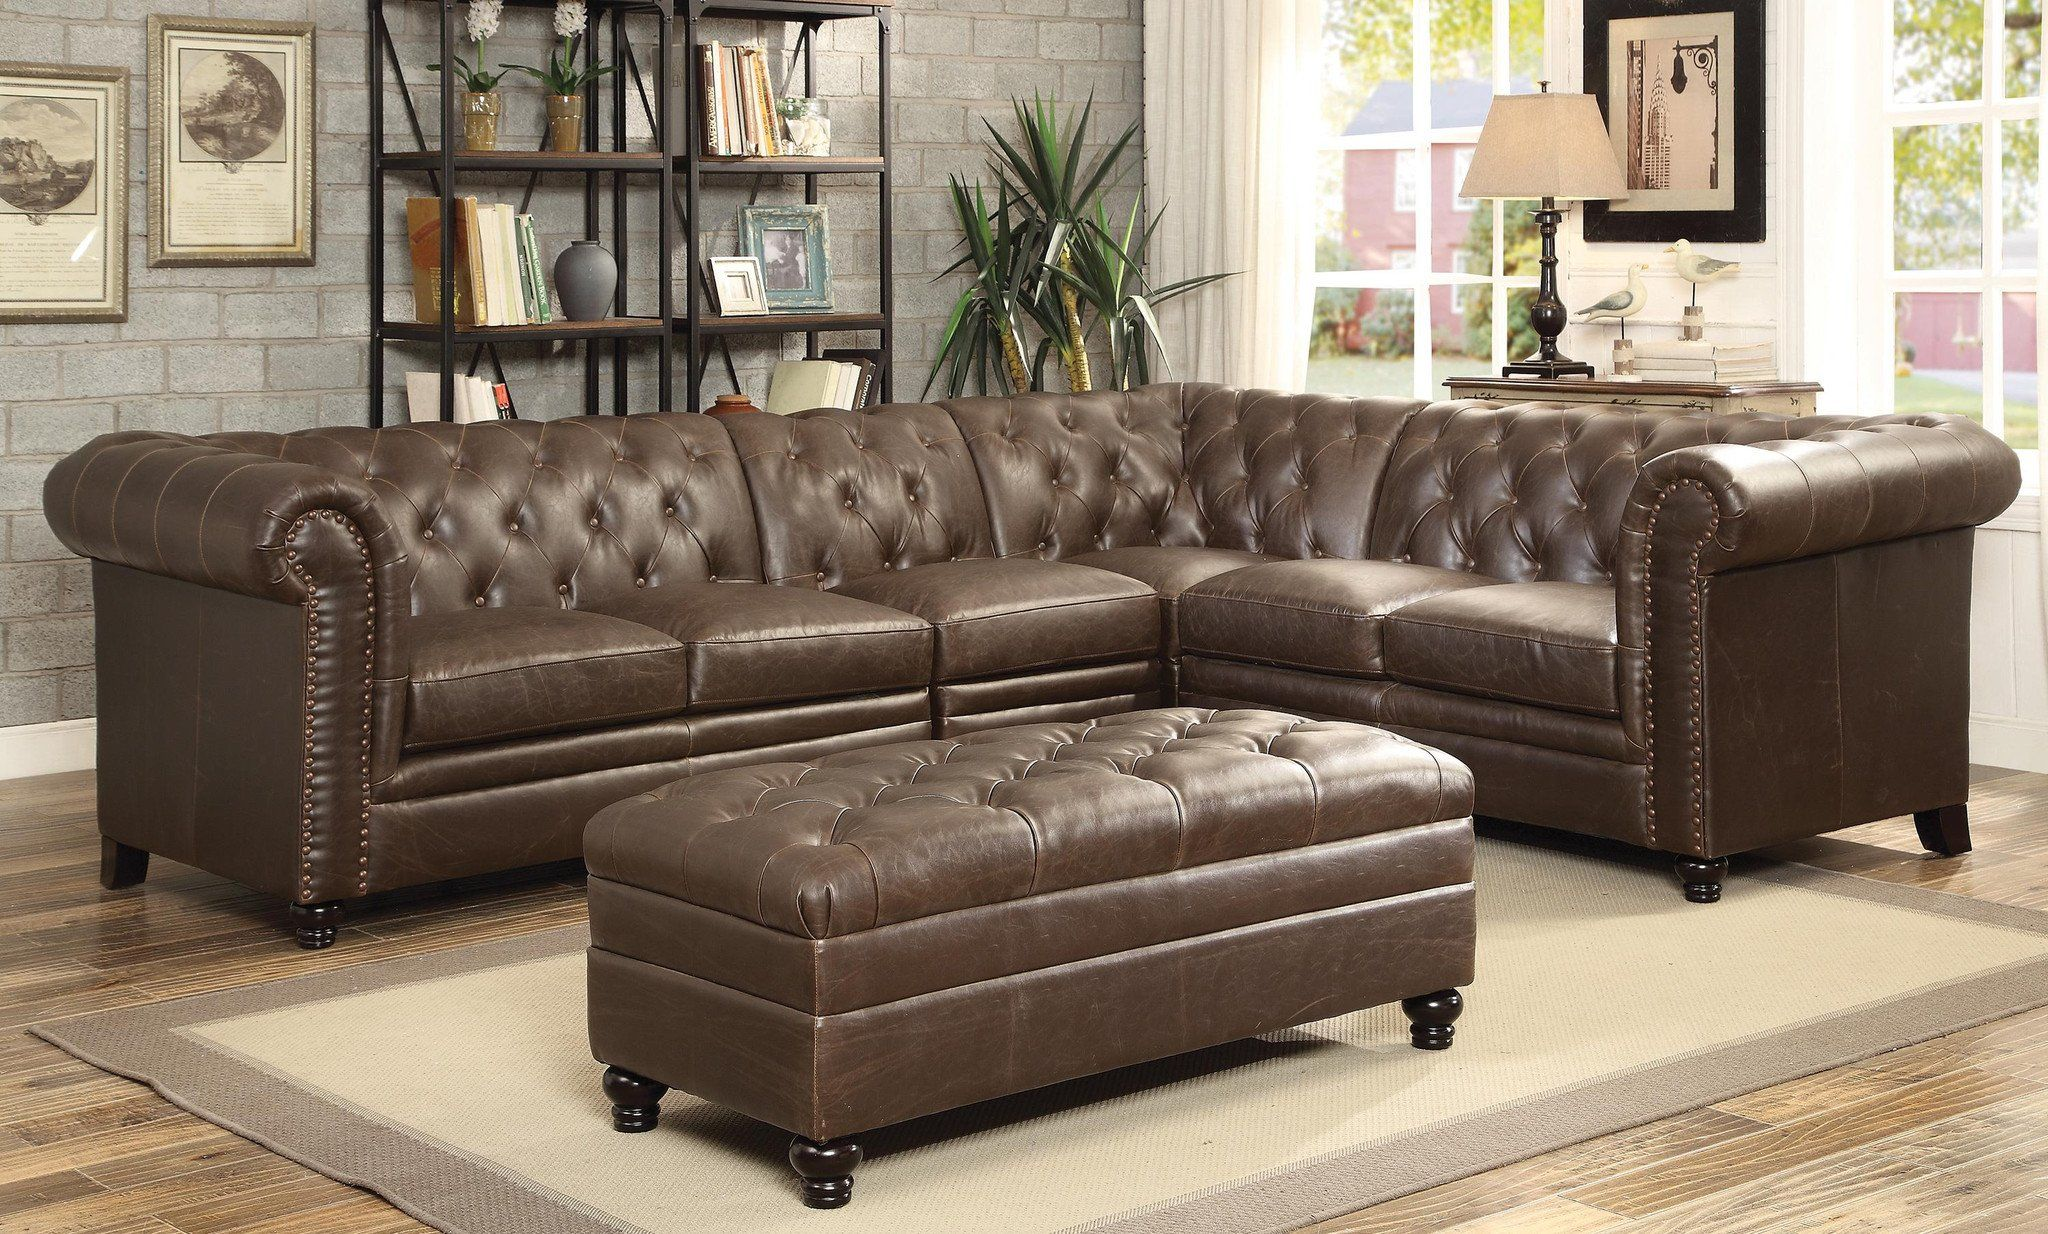 Leather Sectional Sofas A Stylish Comfortable Choice For Today S Living Space Tufted Sectional Sofa Leather Sectional Sofas Sectional Sofa